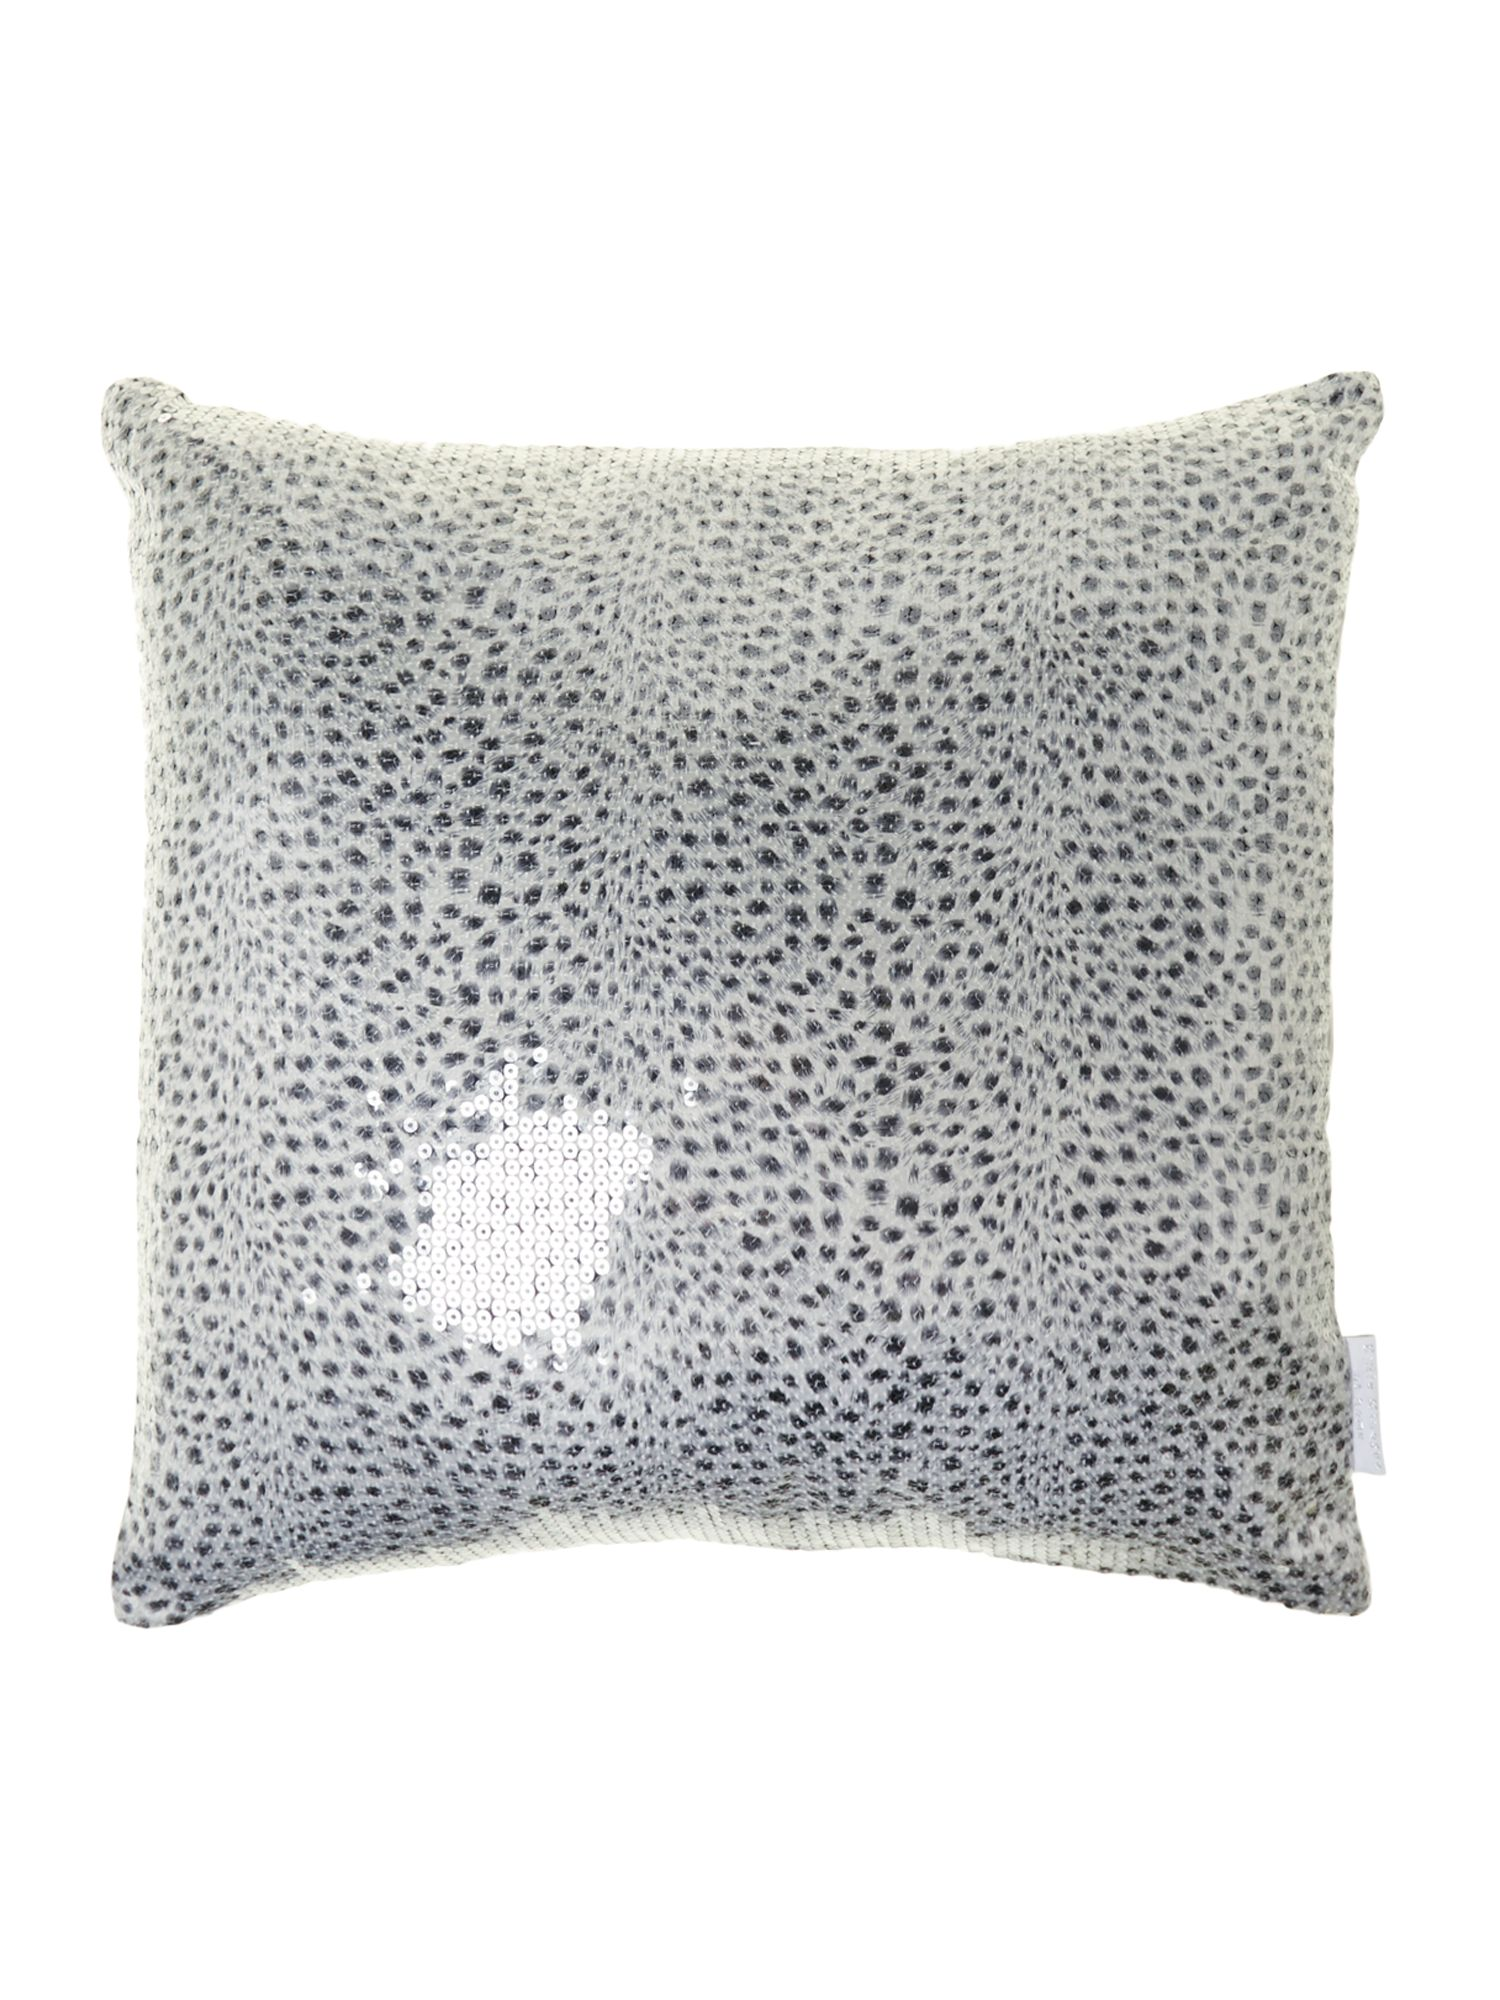 Leopard silver 45X45 cushion